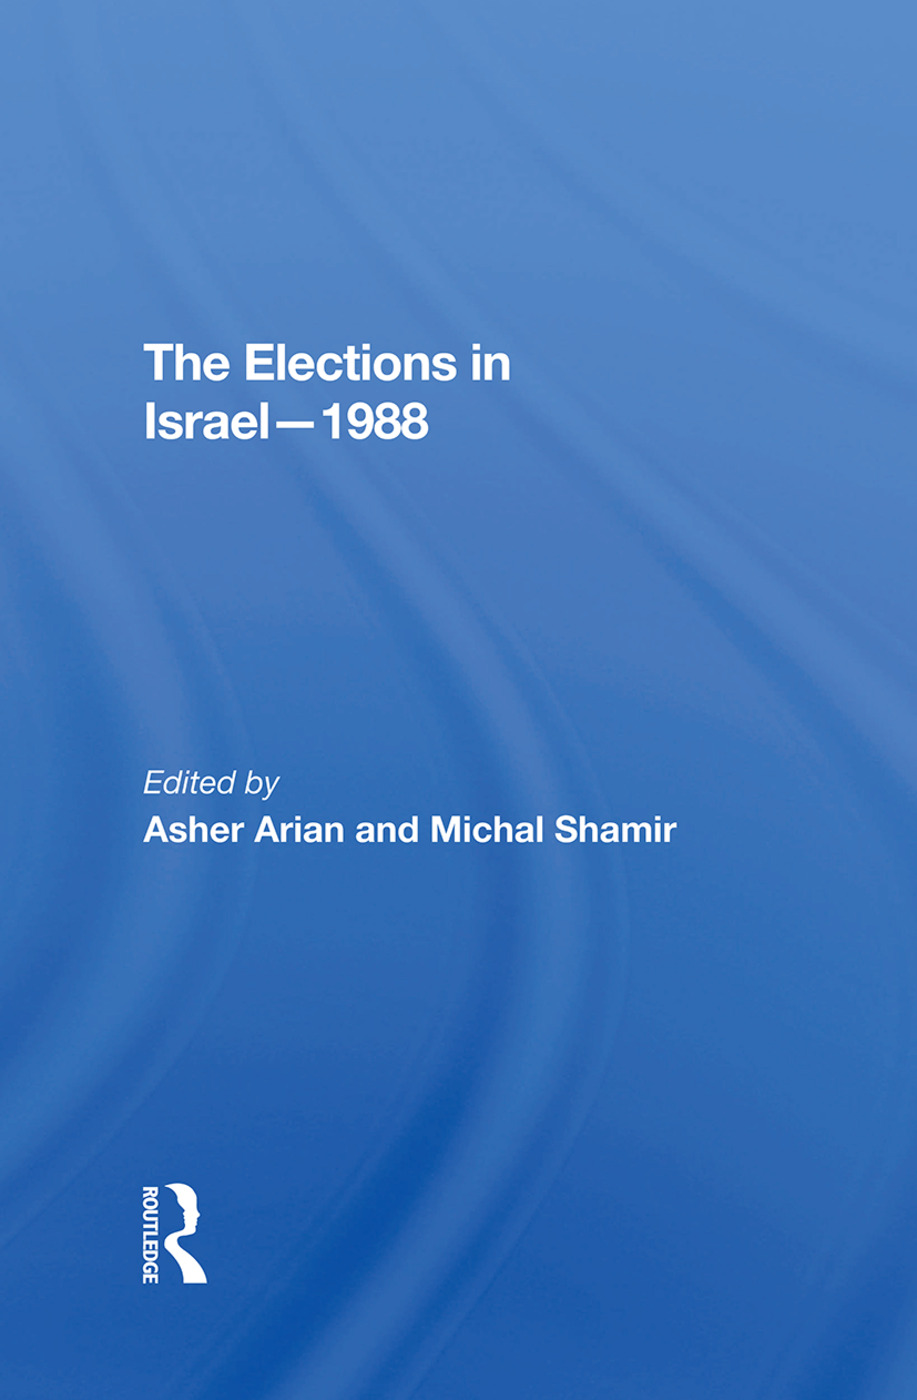 The Elections in Israel—1988